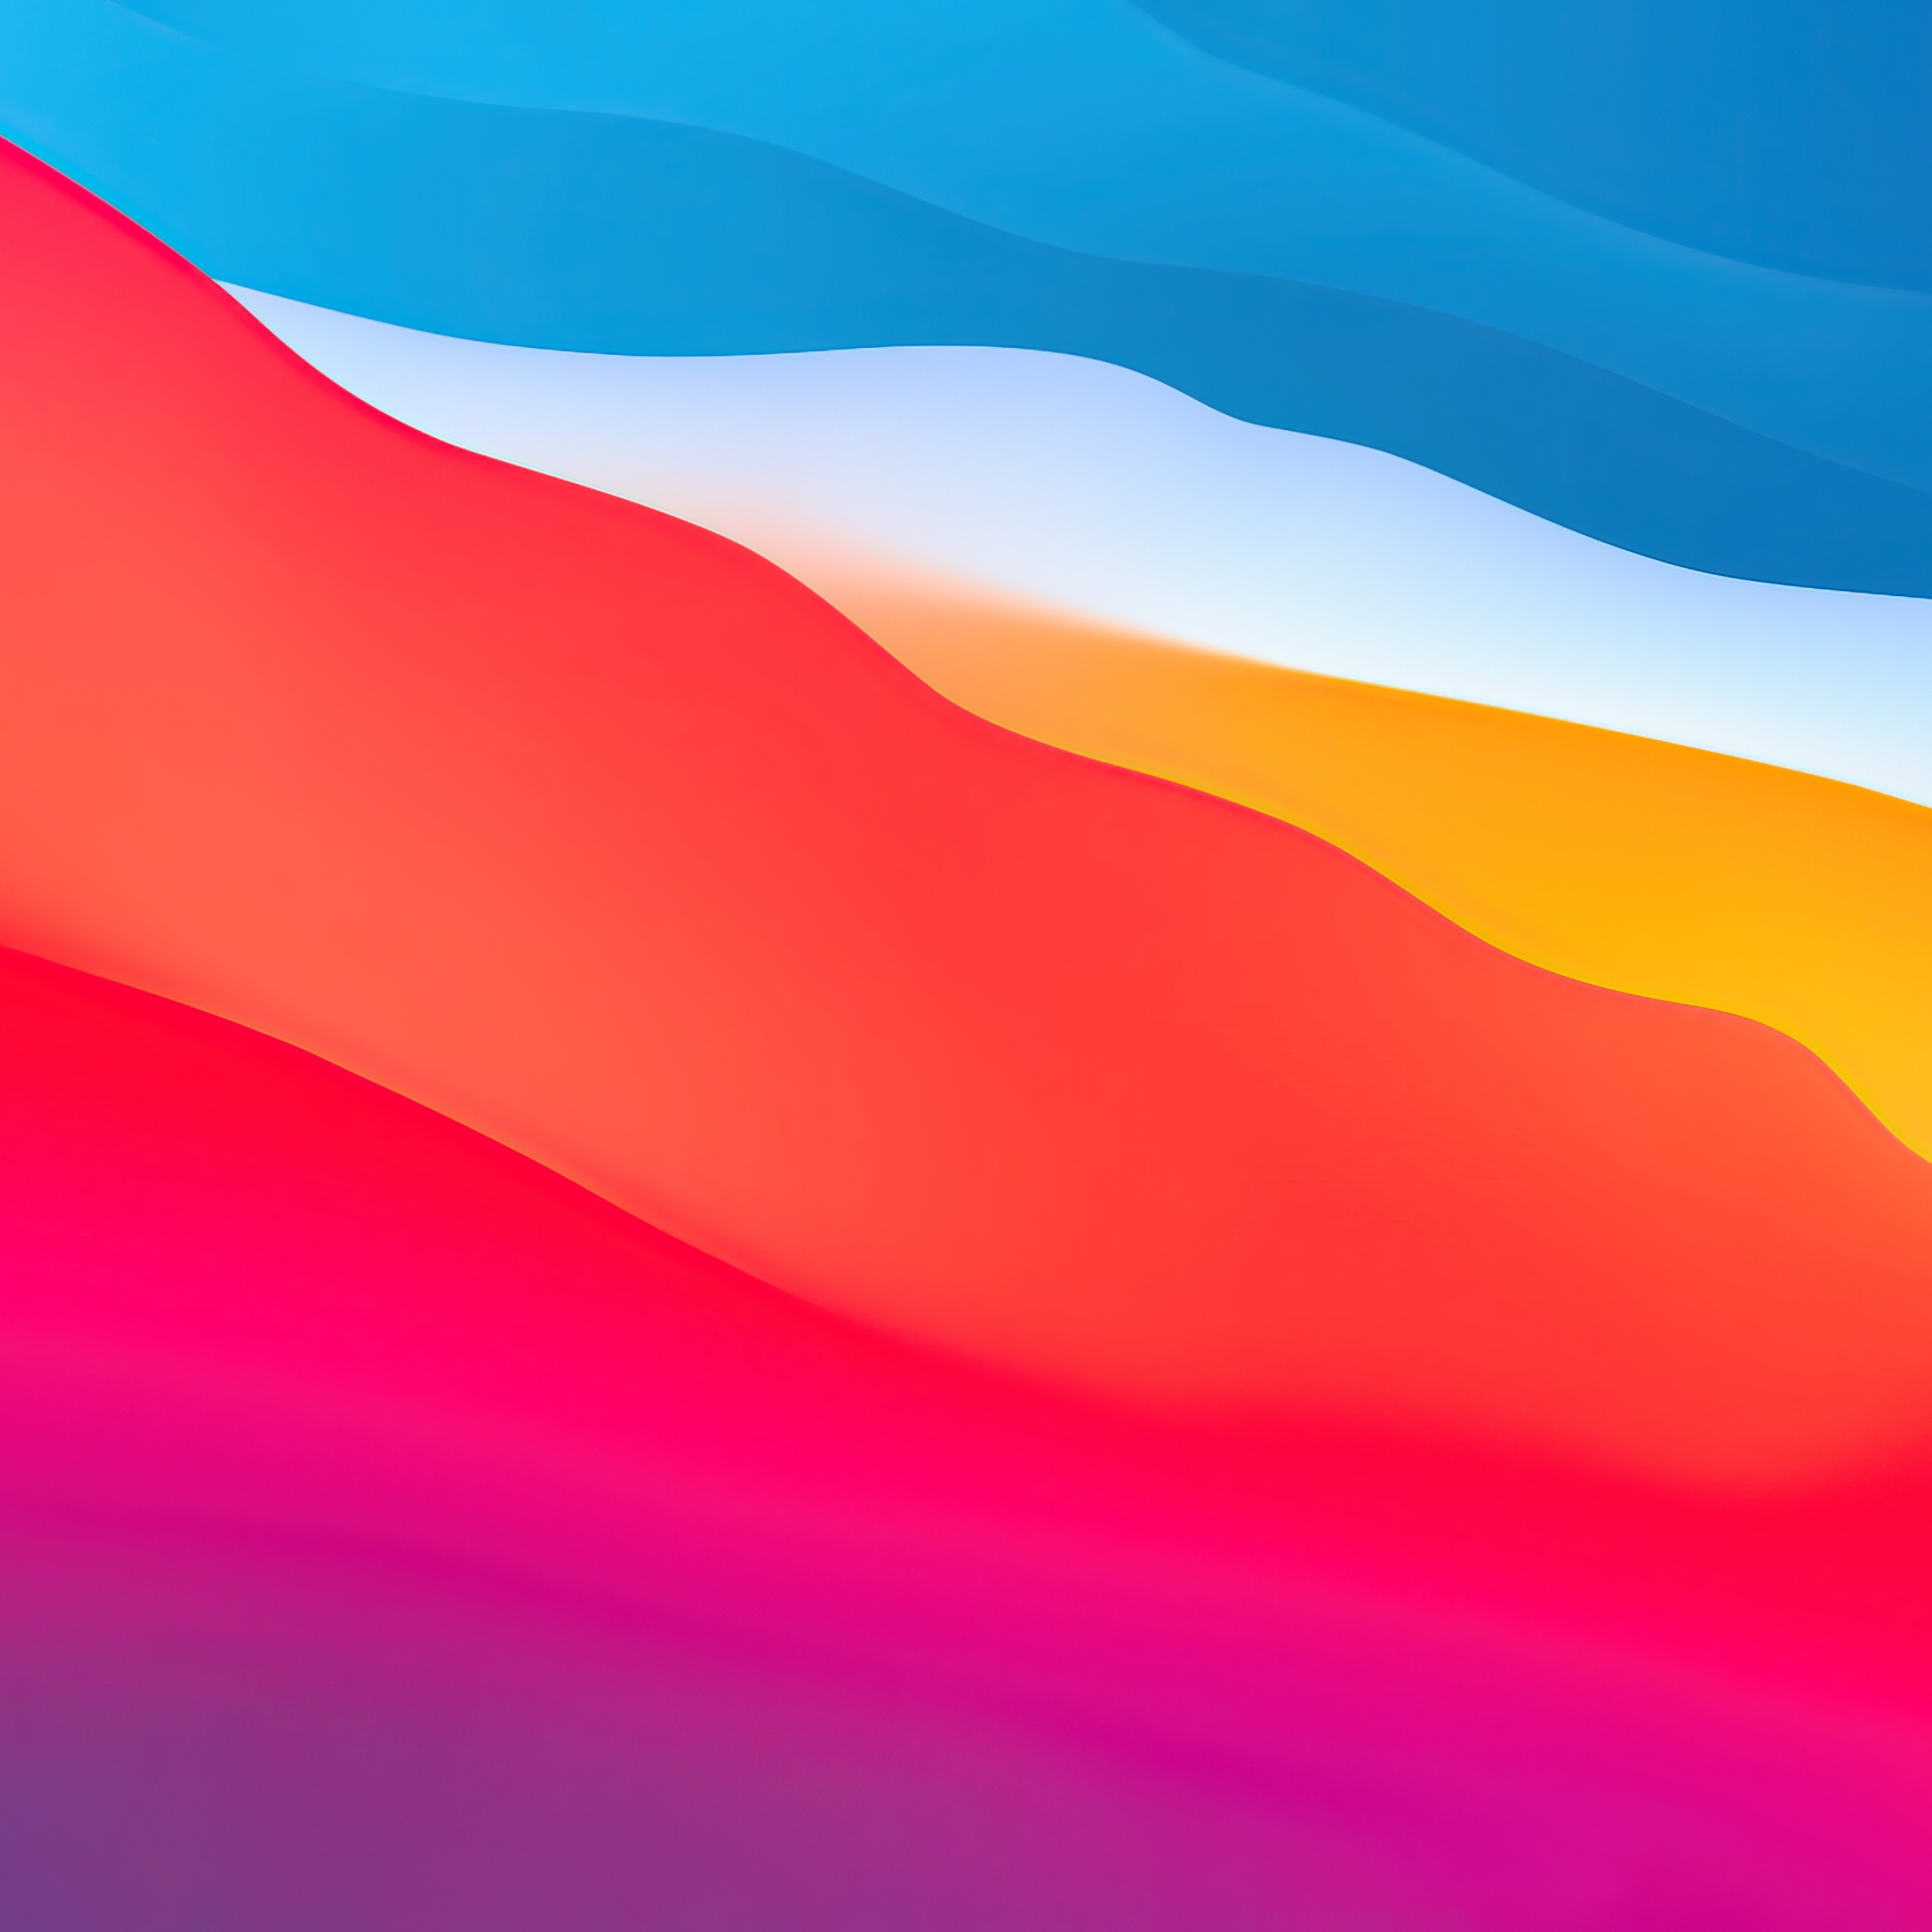 Macos Big Sur 4k Wallpaper Apple Layers Fluidic Colorful Wwdc Stock 2020 Gradients 1455